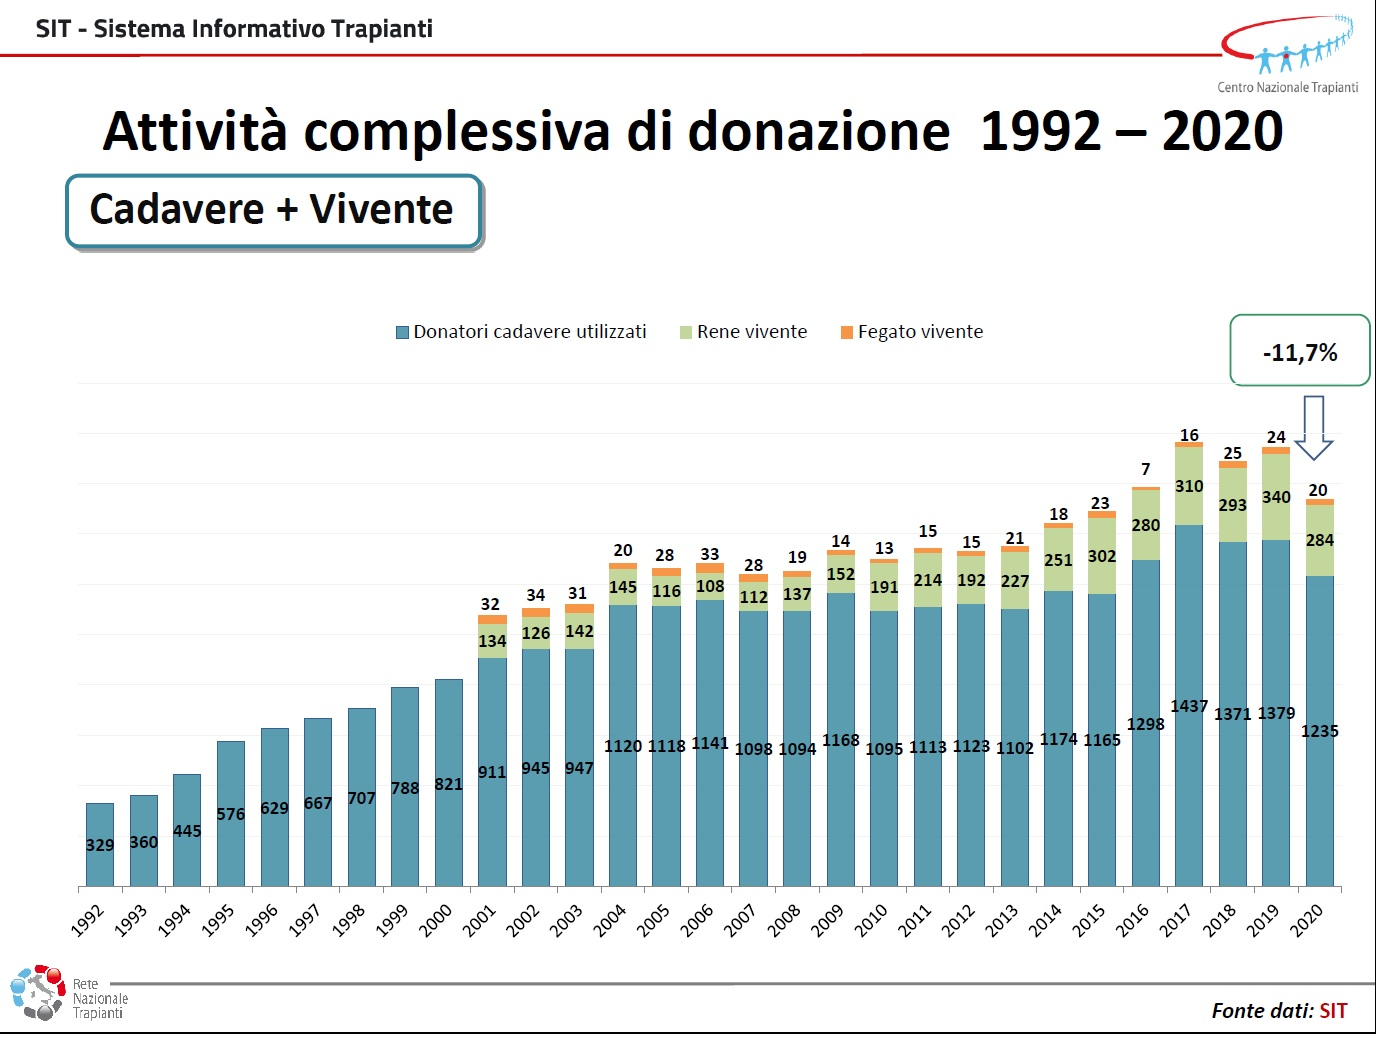 Organ donations in Italy over the years - SIT report